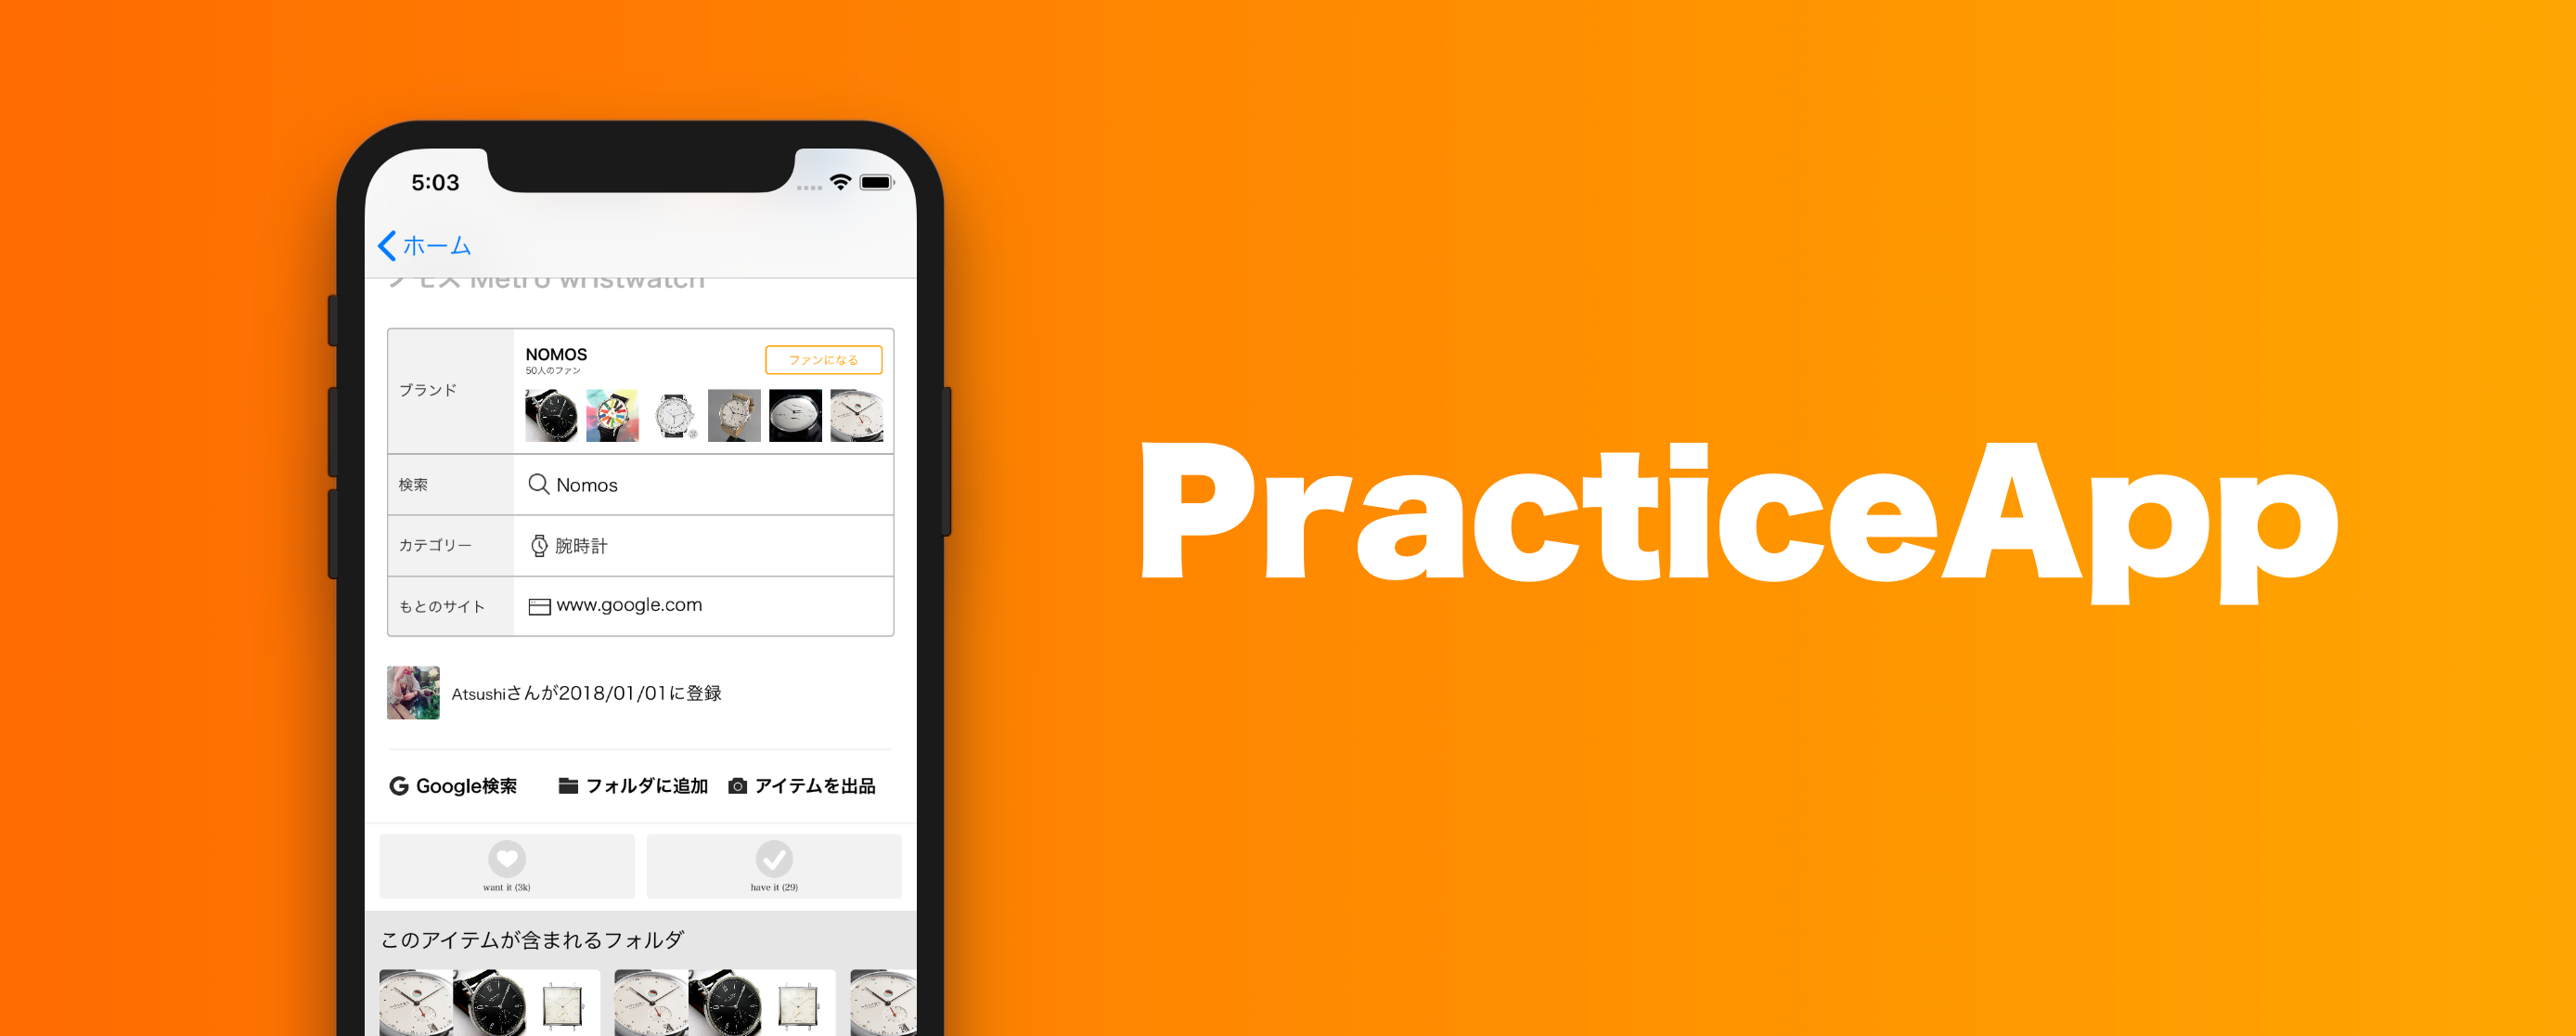 practice-ios/readme md at master · atsushi130/practice-ios